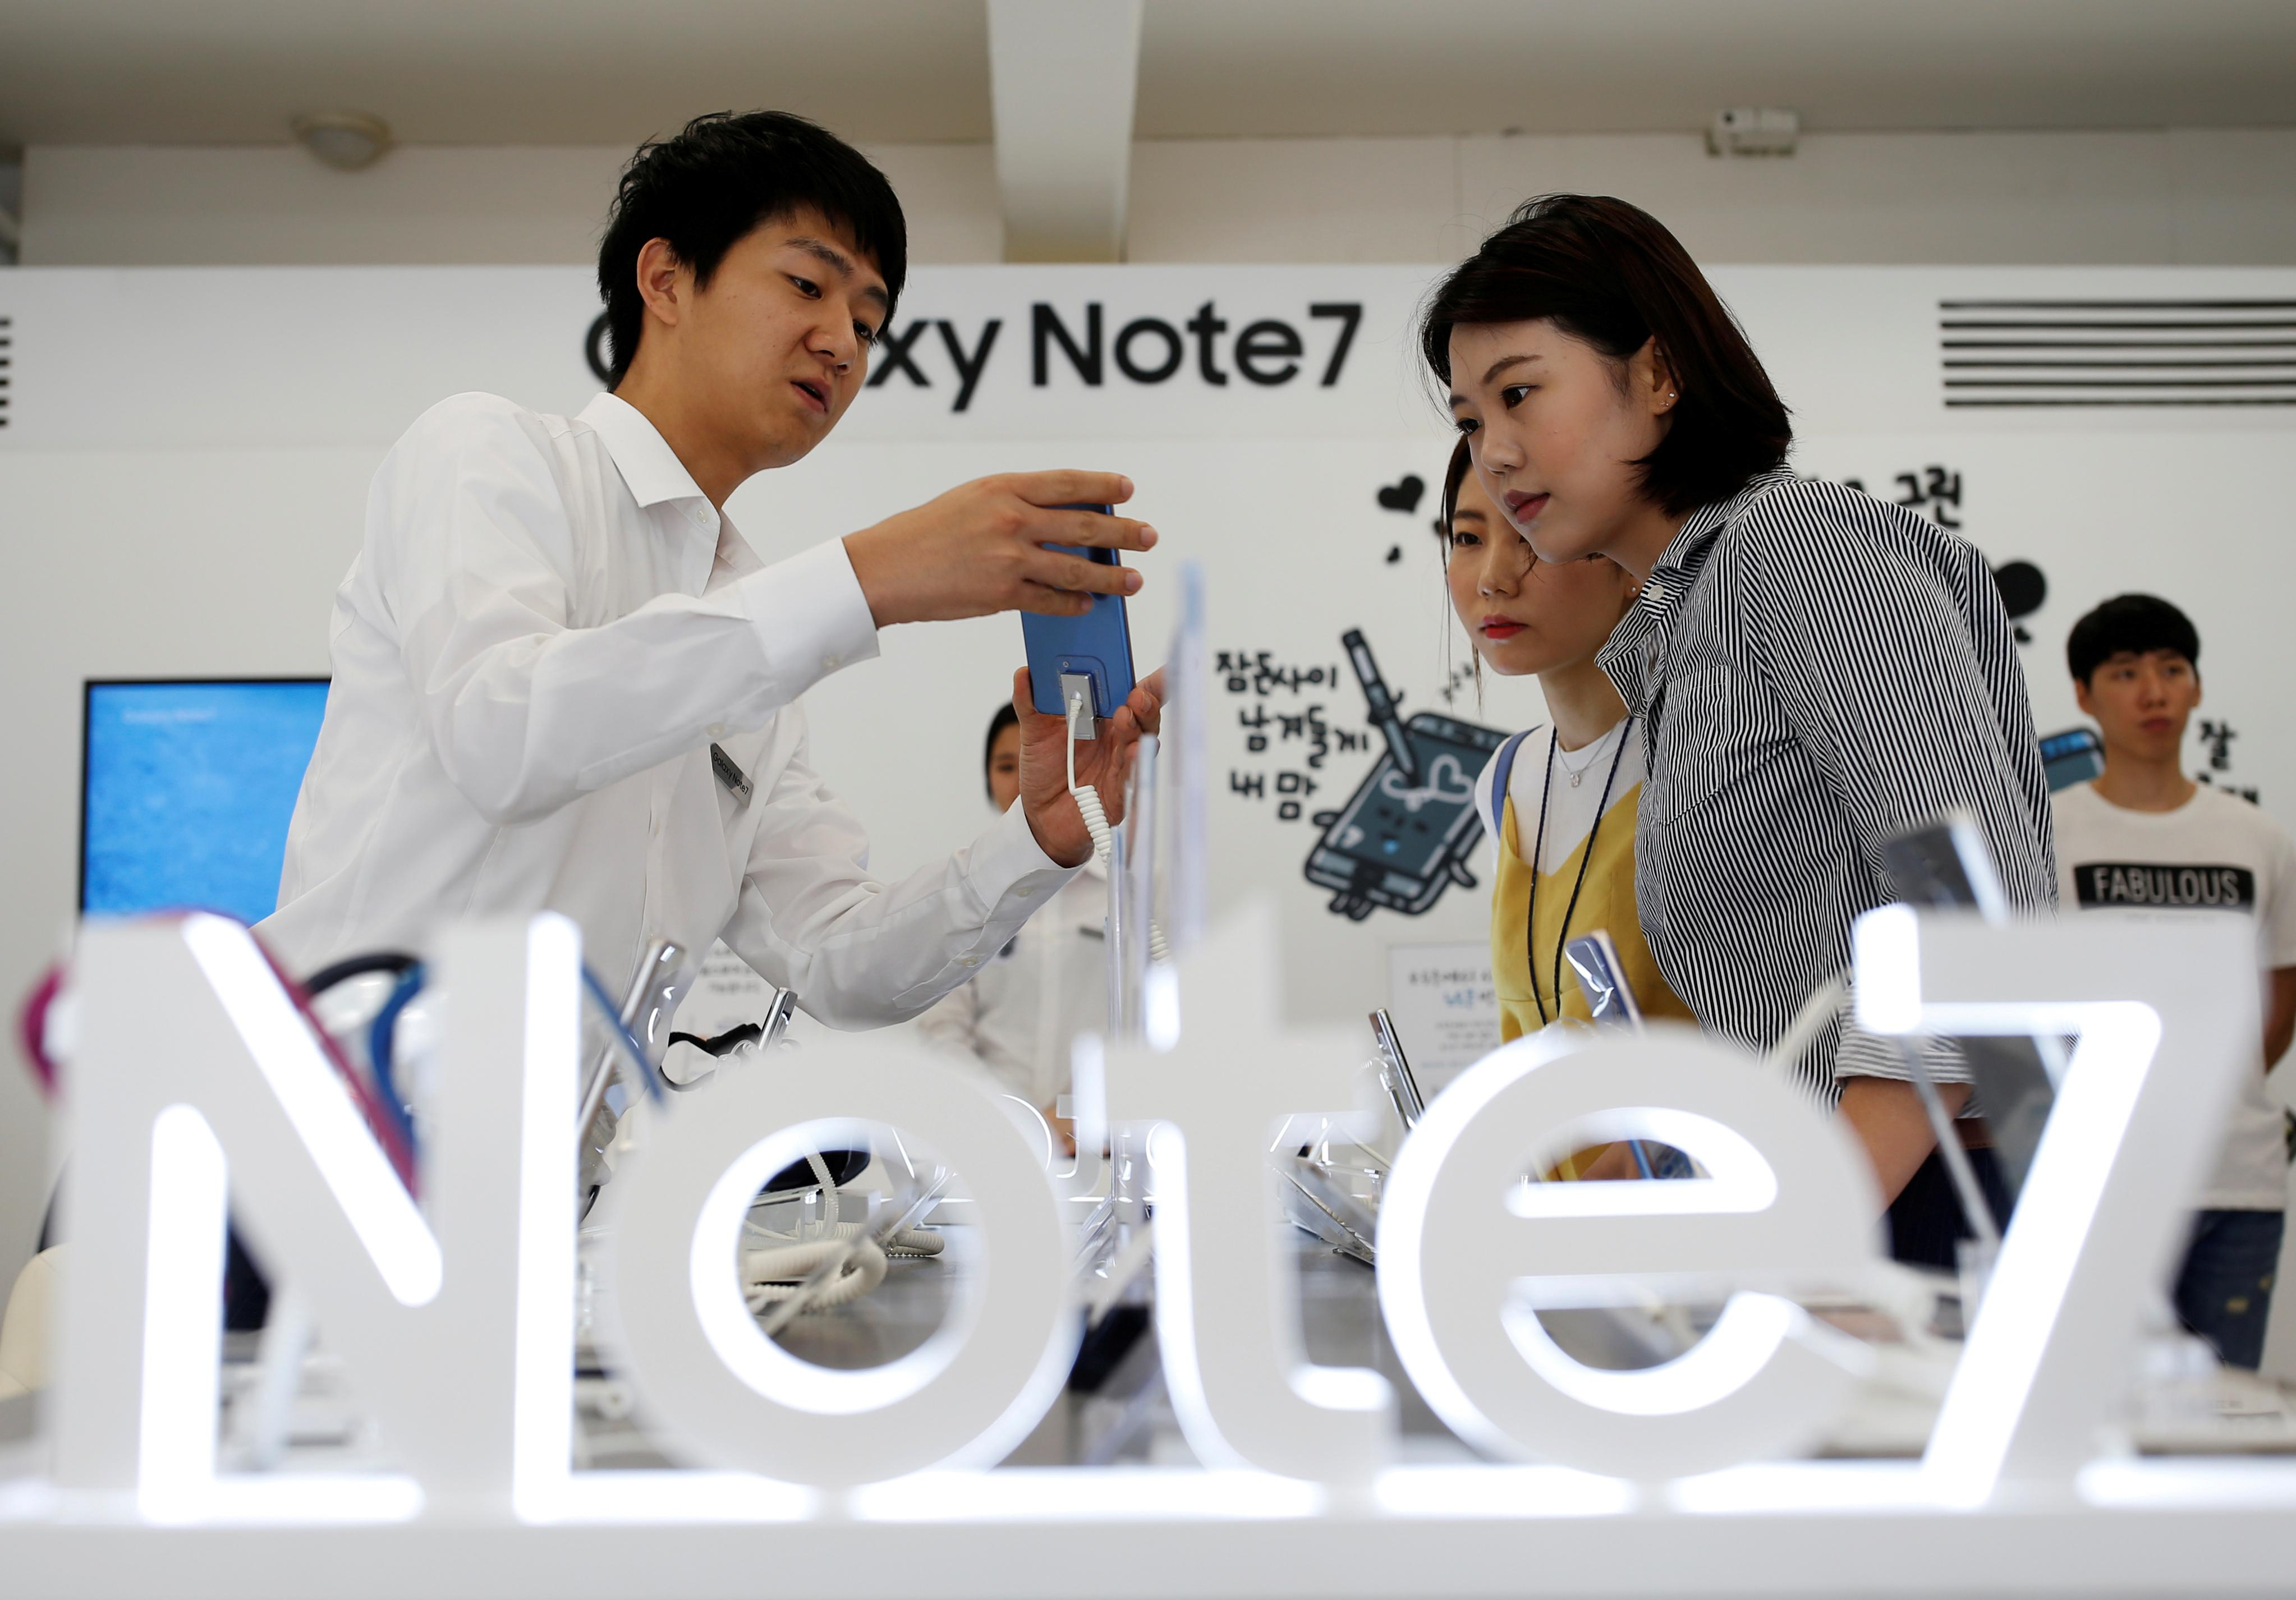 note 7 back